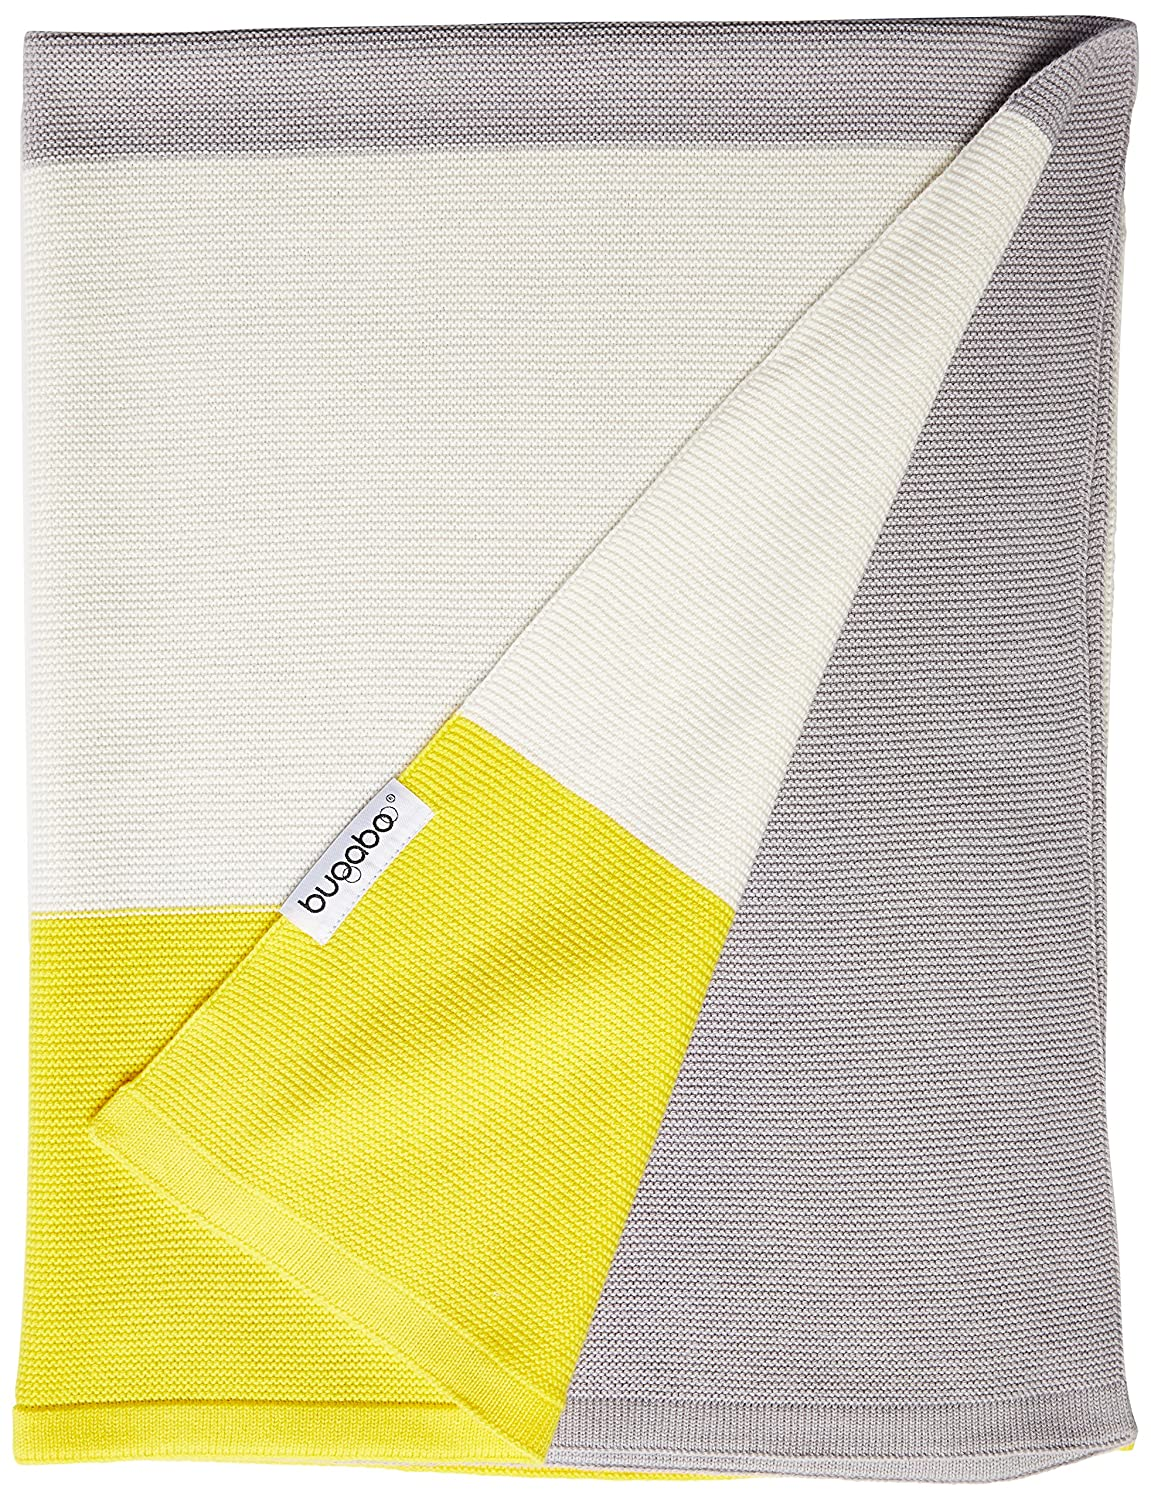 Bugaboo Light Cotton Blanket, Bright Yellow 80152BY01